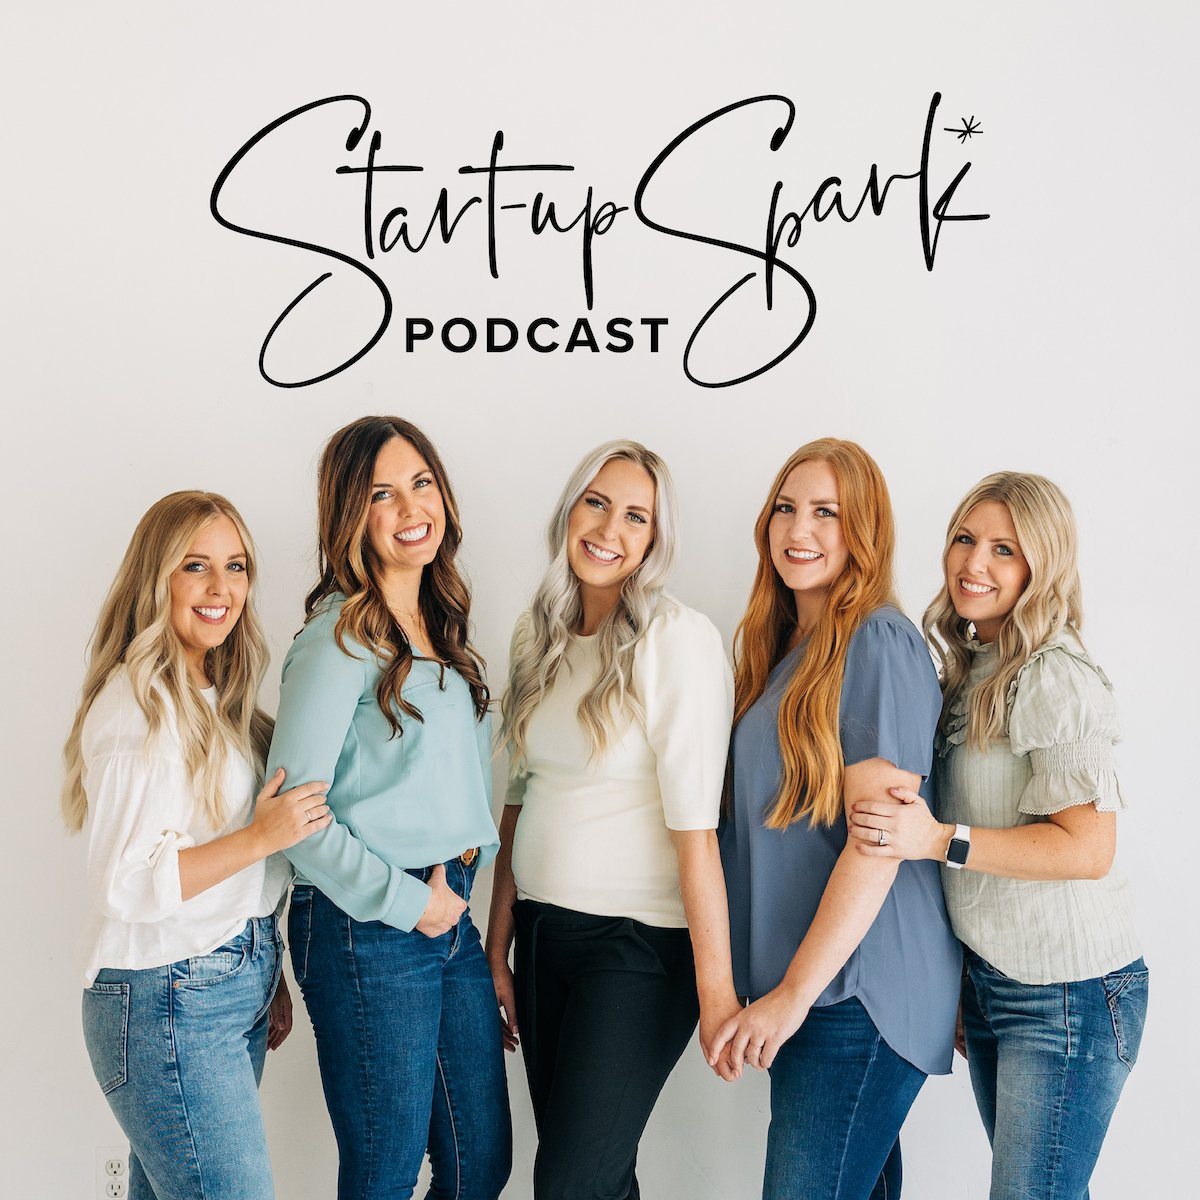 Start-up Spark Podcast